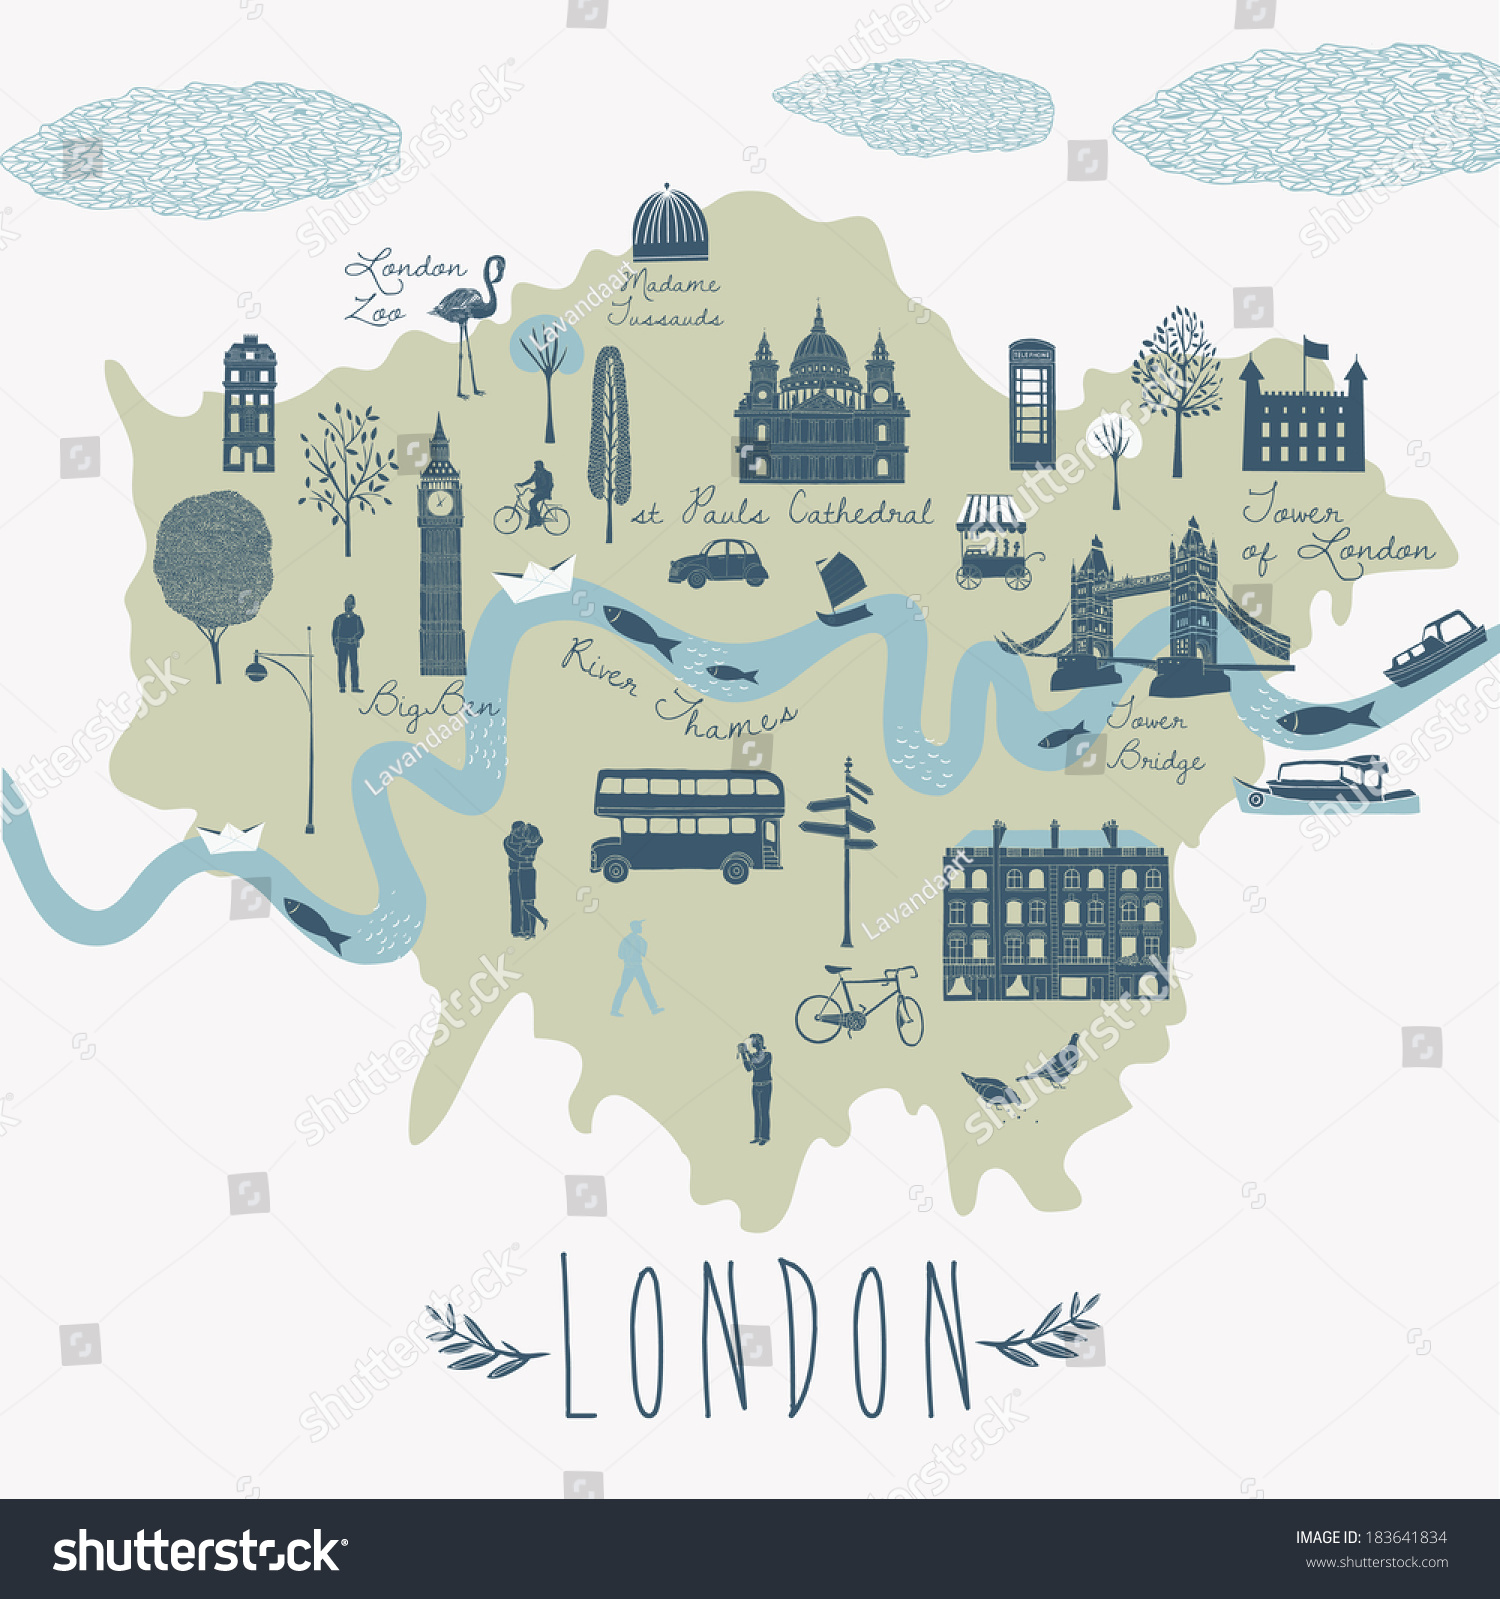 Map London Attractions Vector 183641834 Shutterstock – London Tourist Information Map